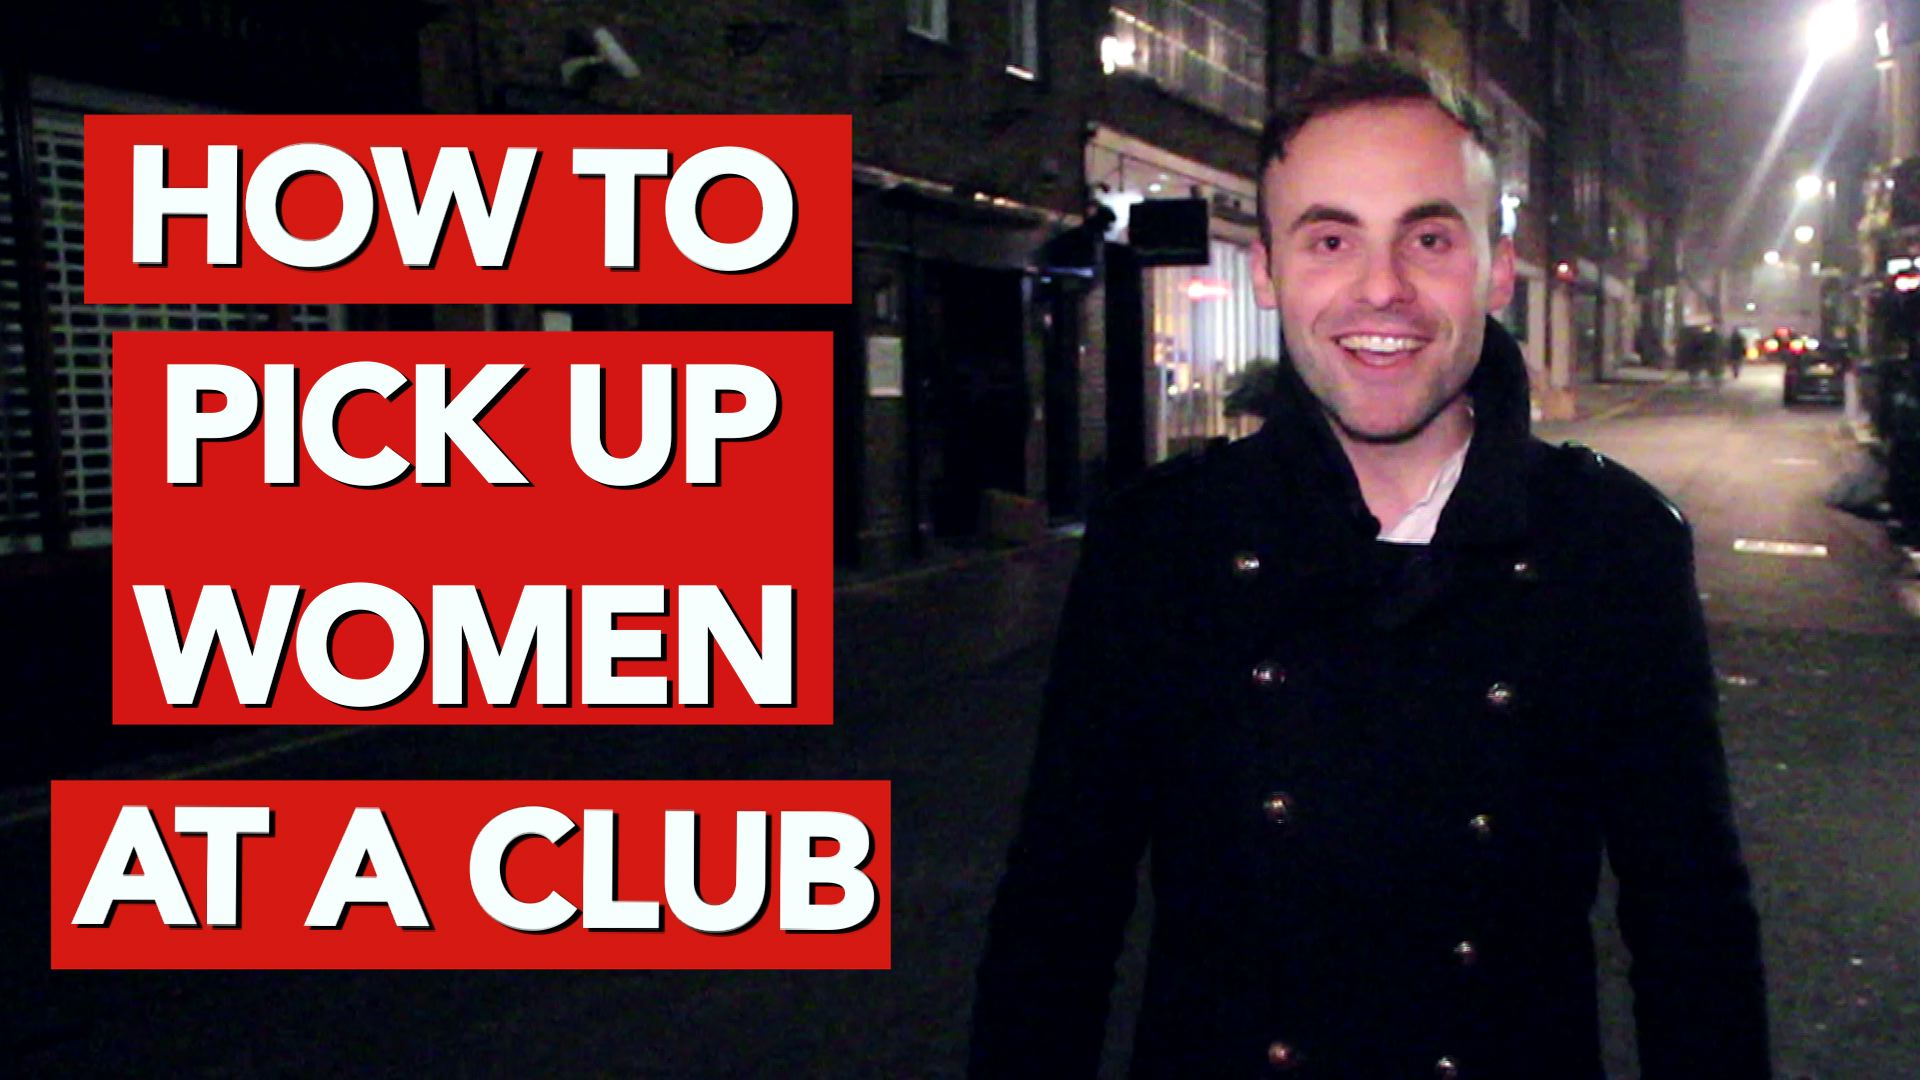 How to pick up women at a club